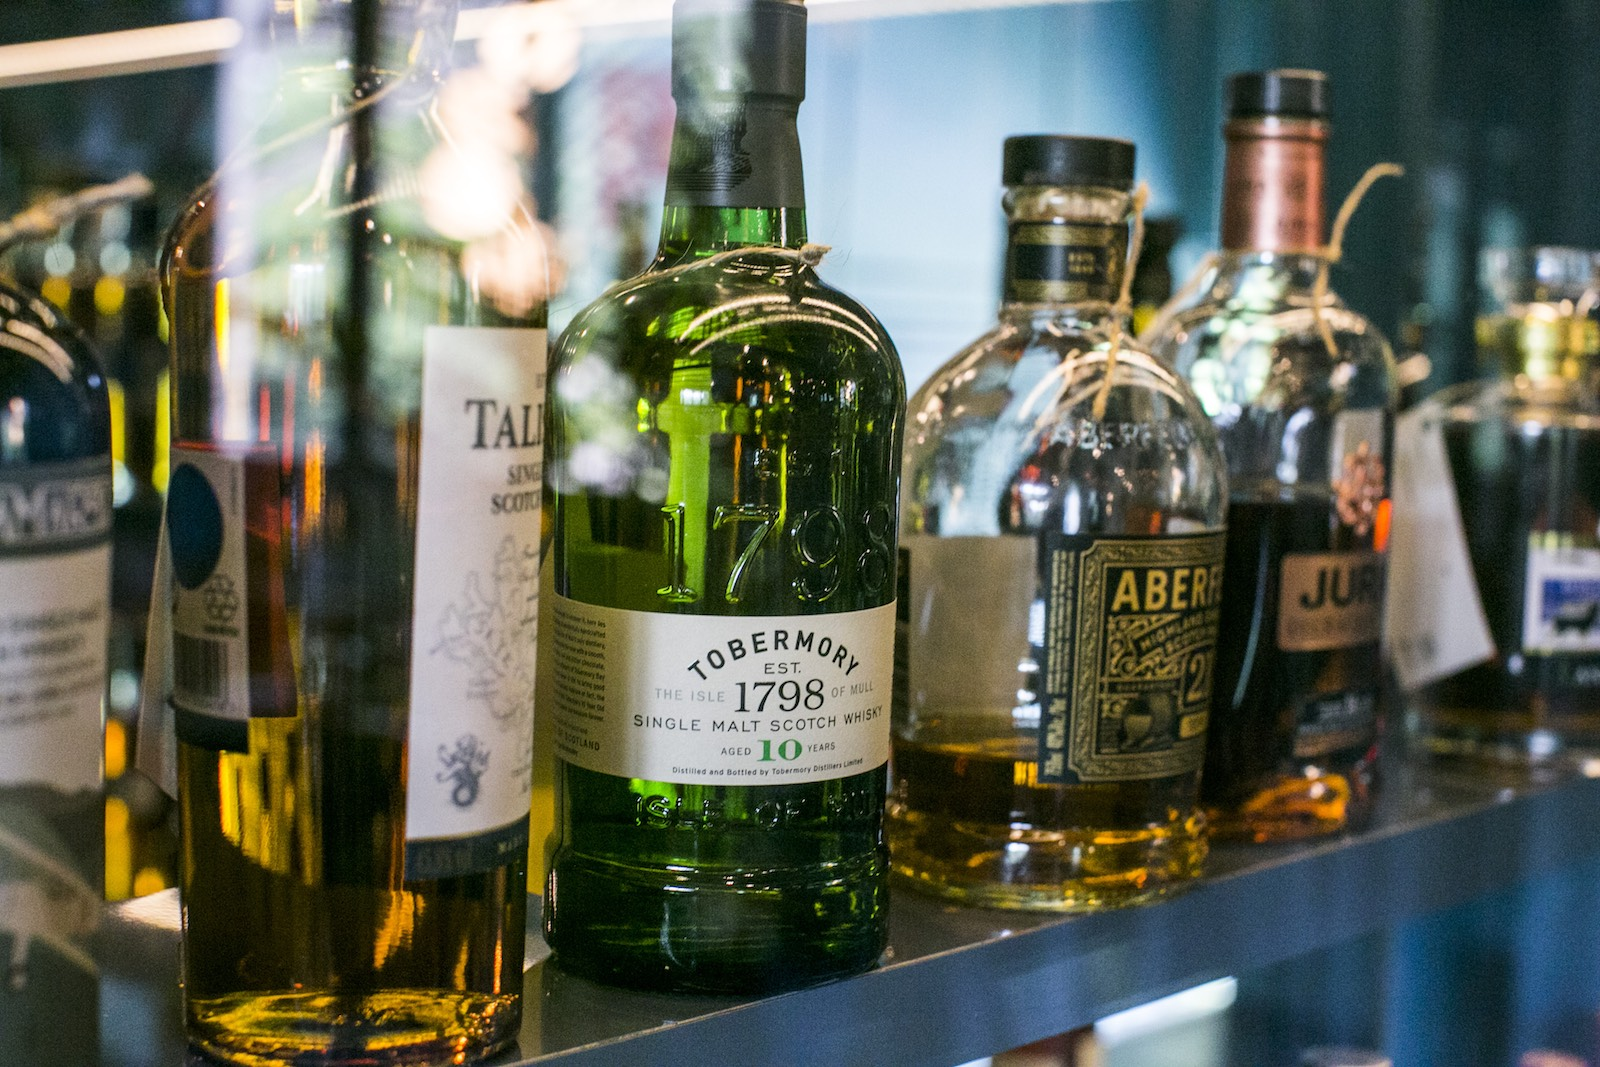 Room for More - Whiskies